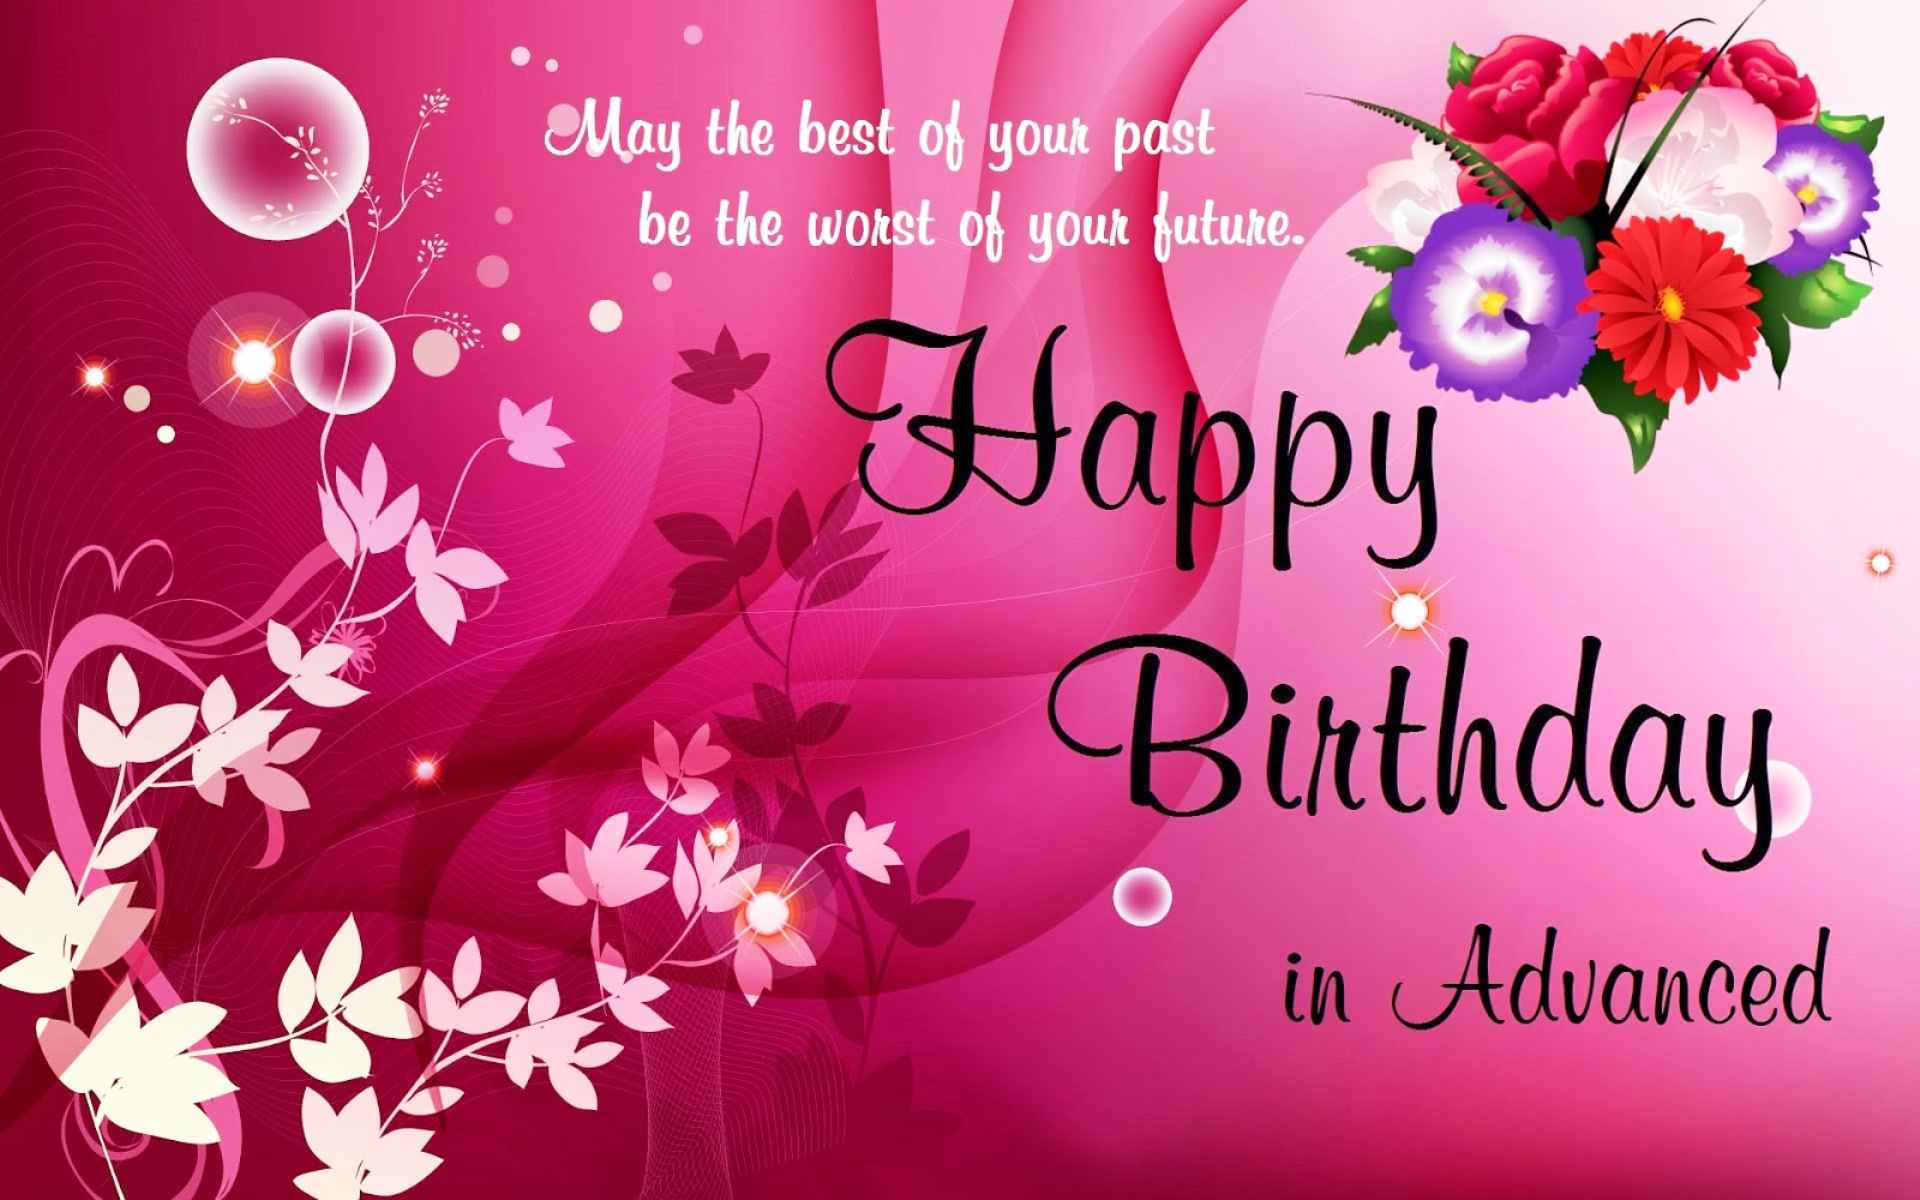 birthday message images download ; heartfelt-birthday-wishes-that-can-express-your-love-to-girlfriend-on-her-birthday-2018-hny308758